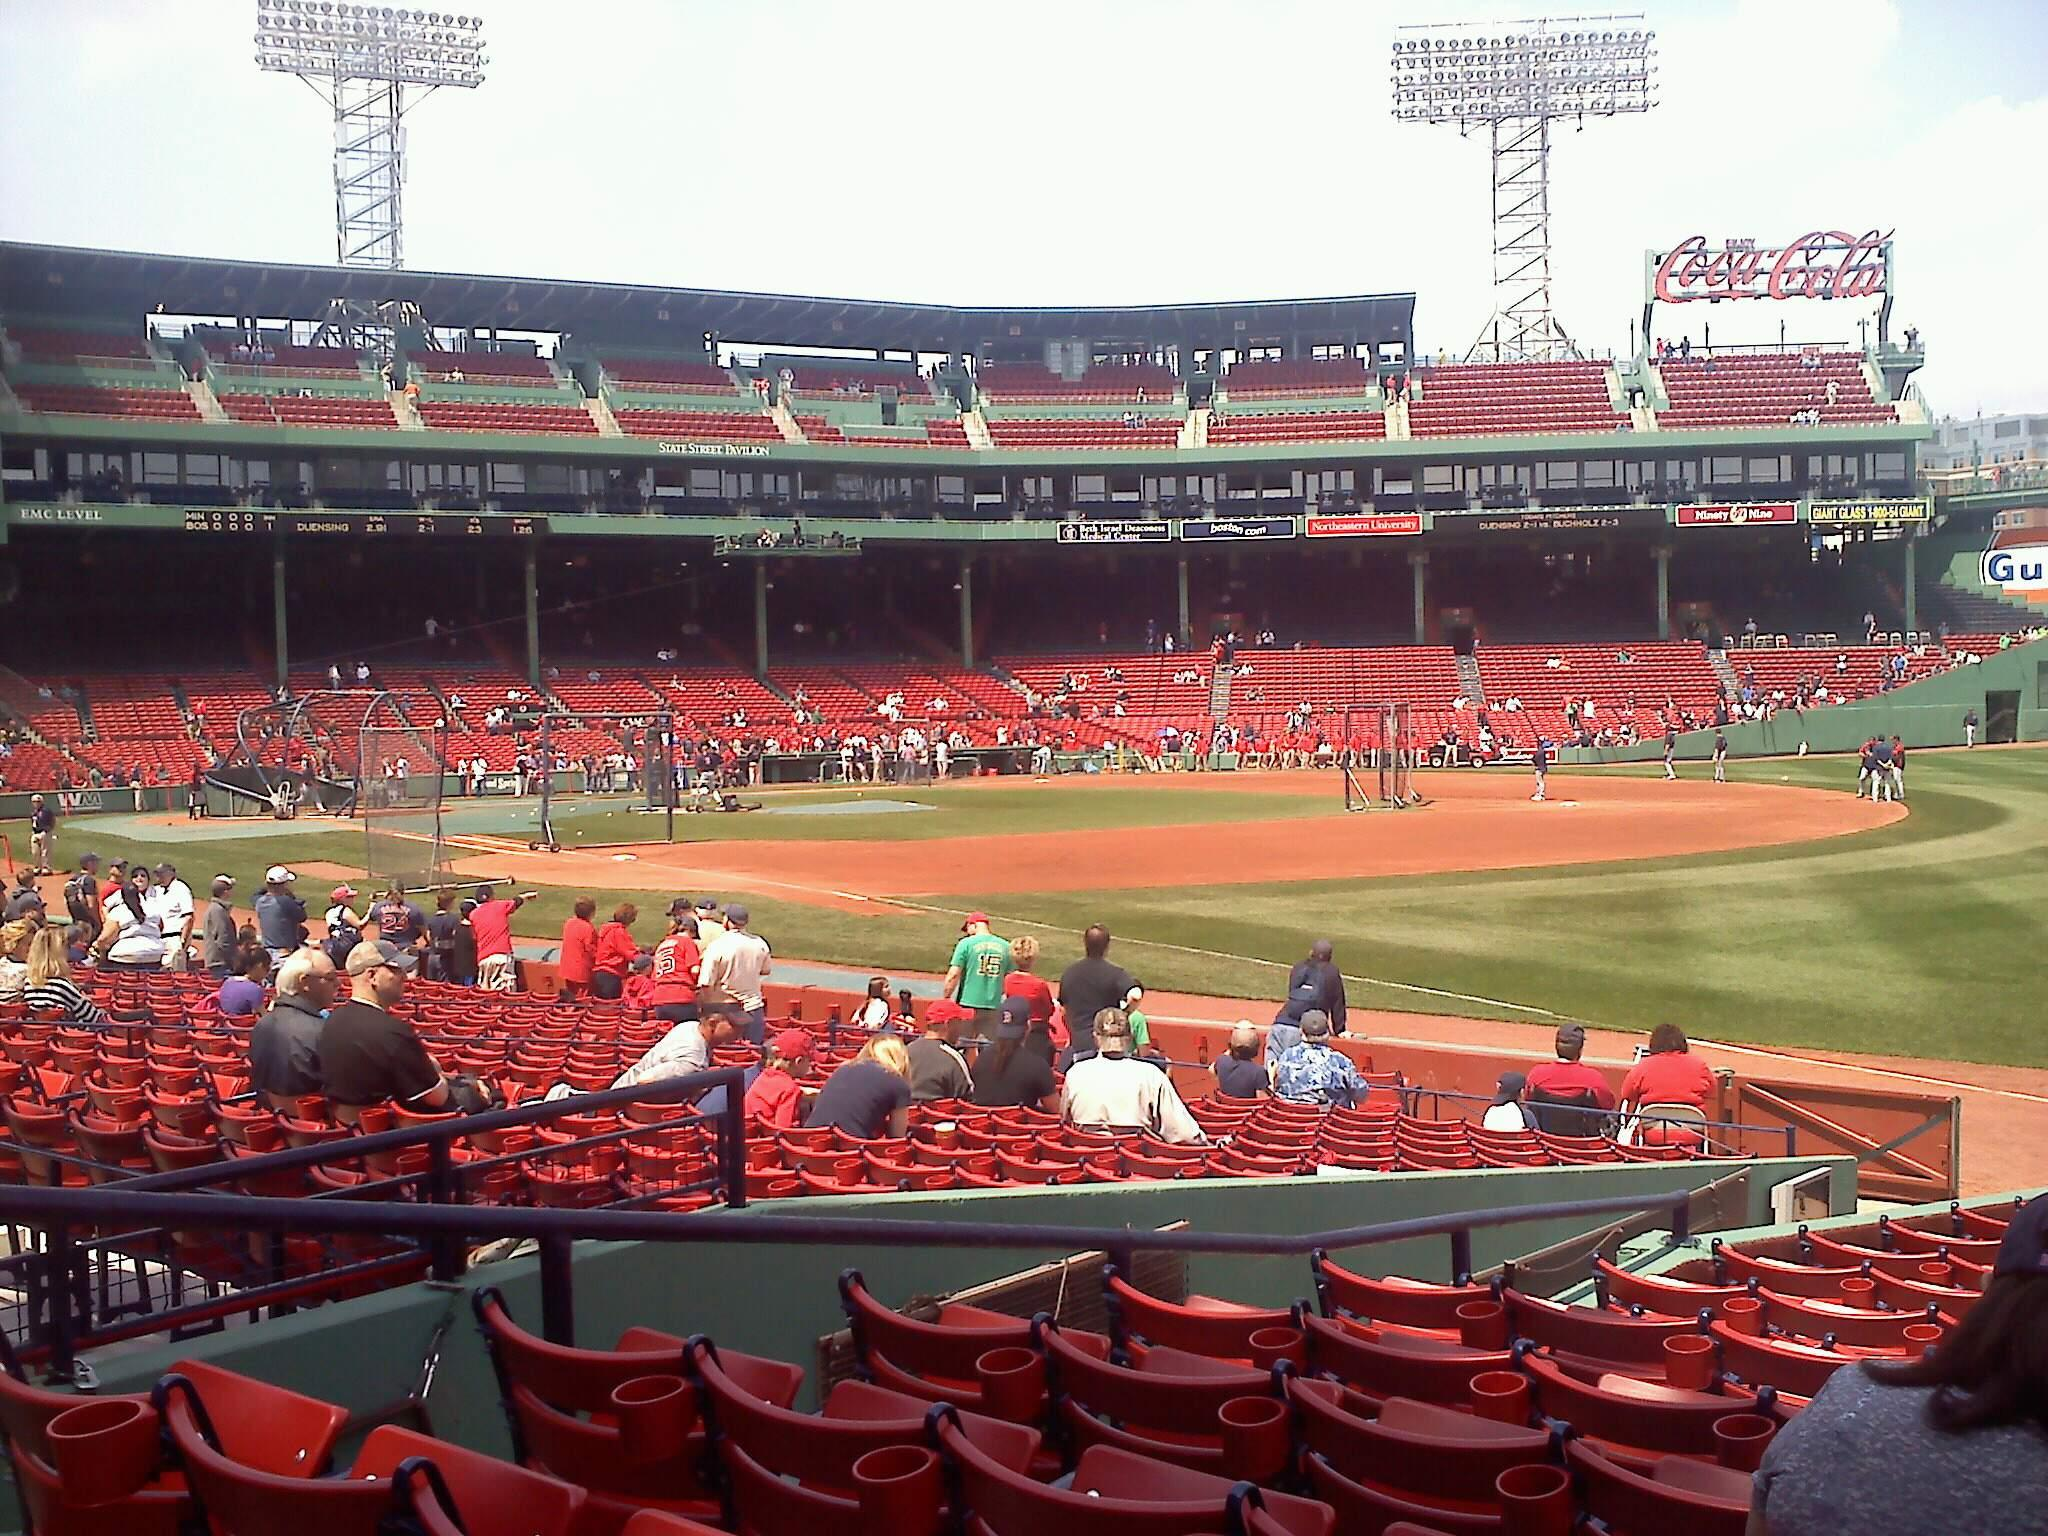 Fenway Park Section 10-B97 Row hh Seat 7